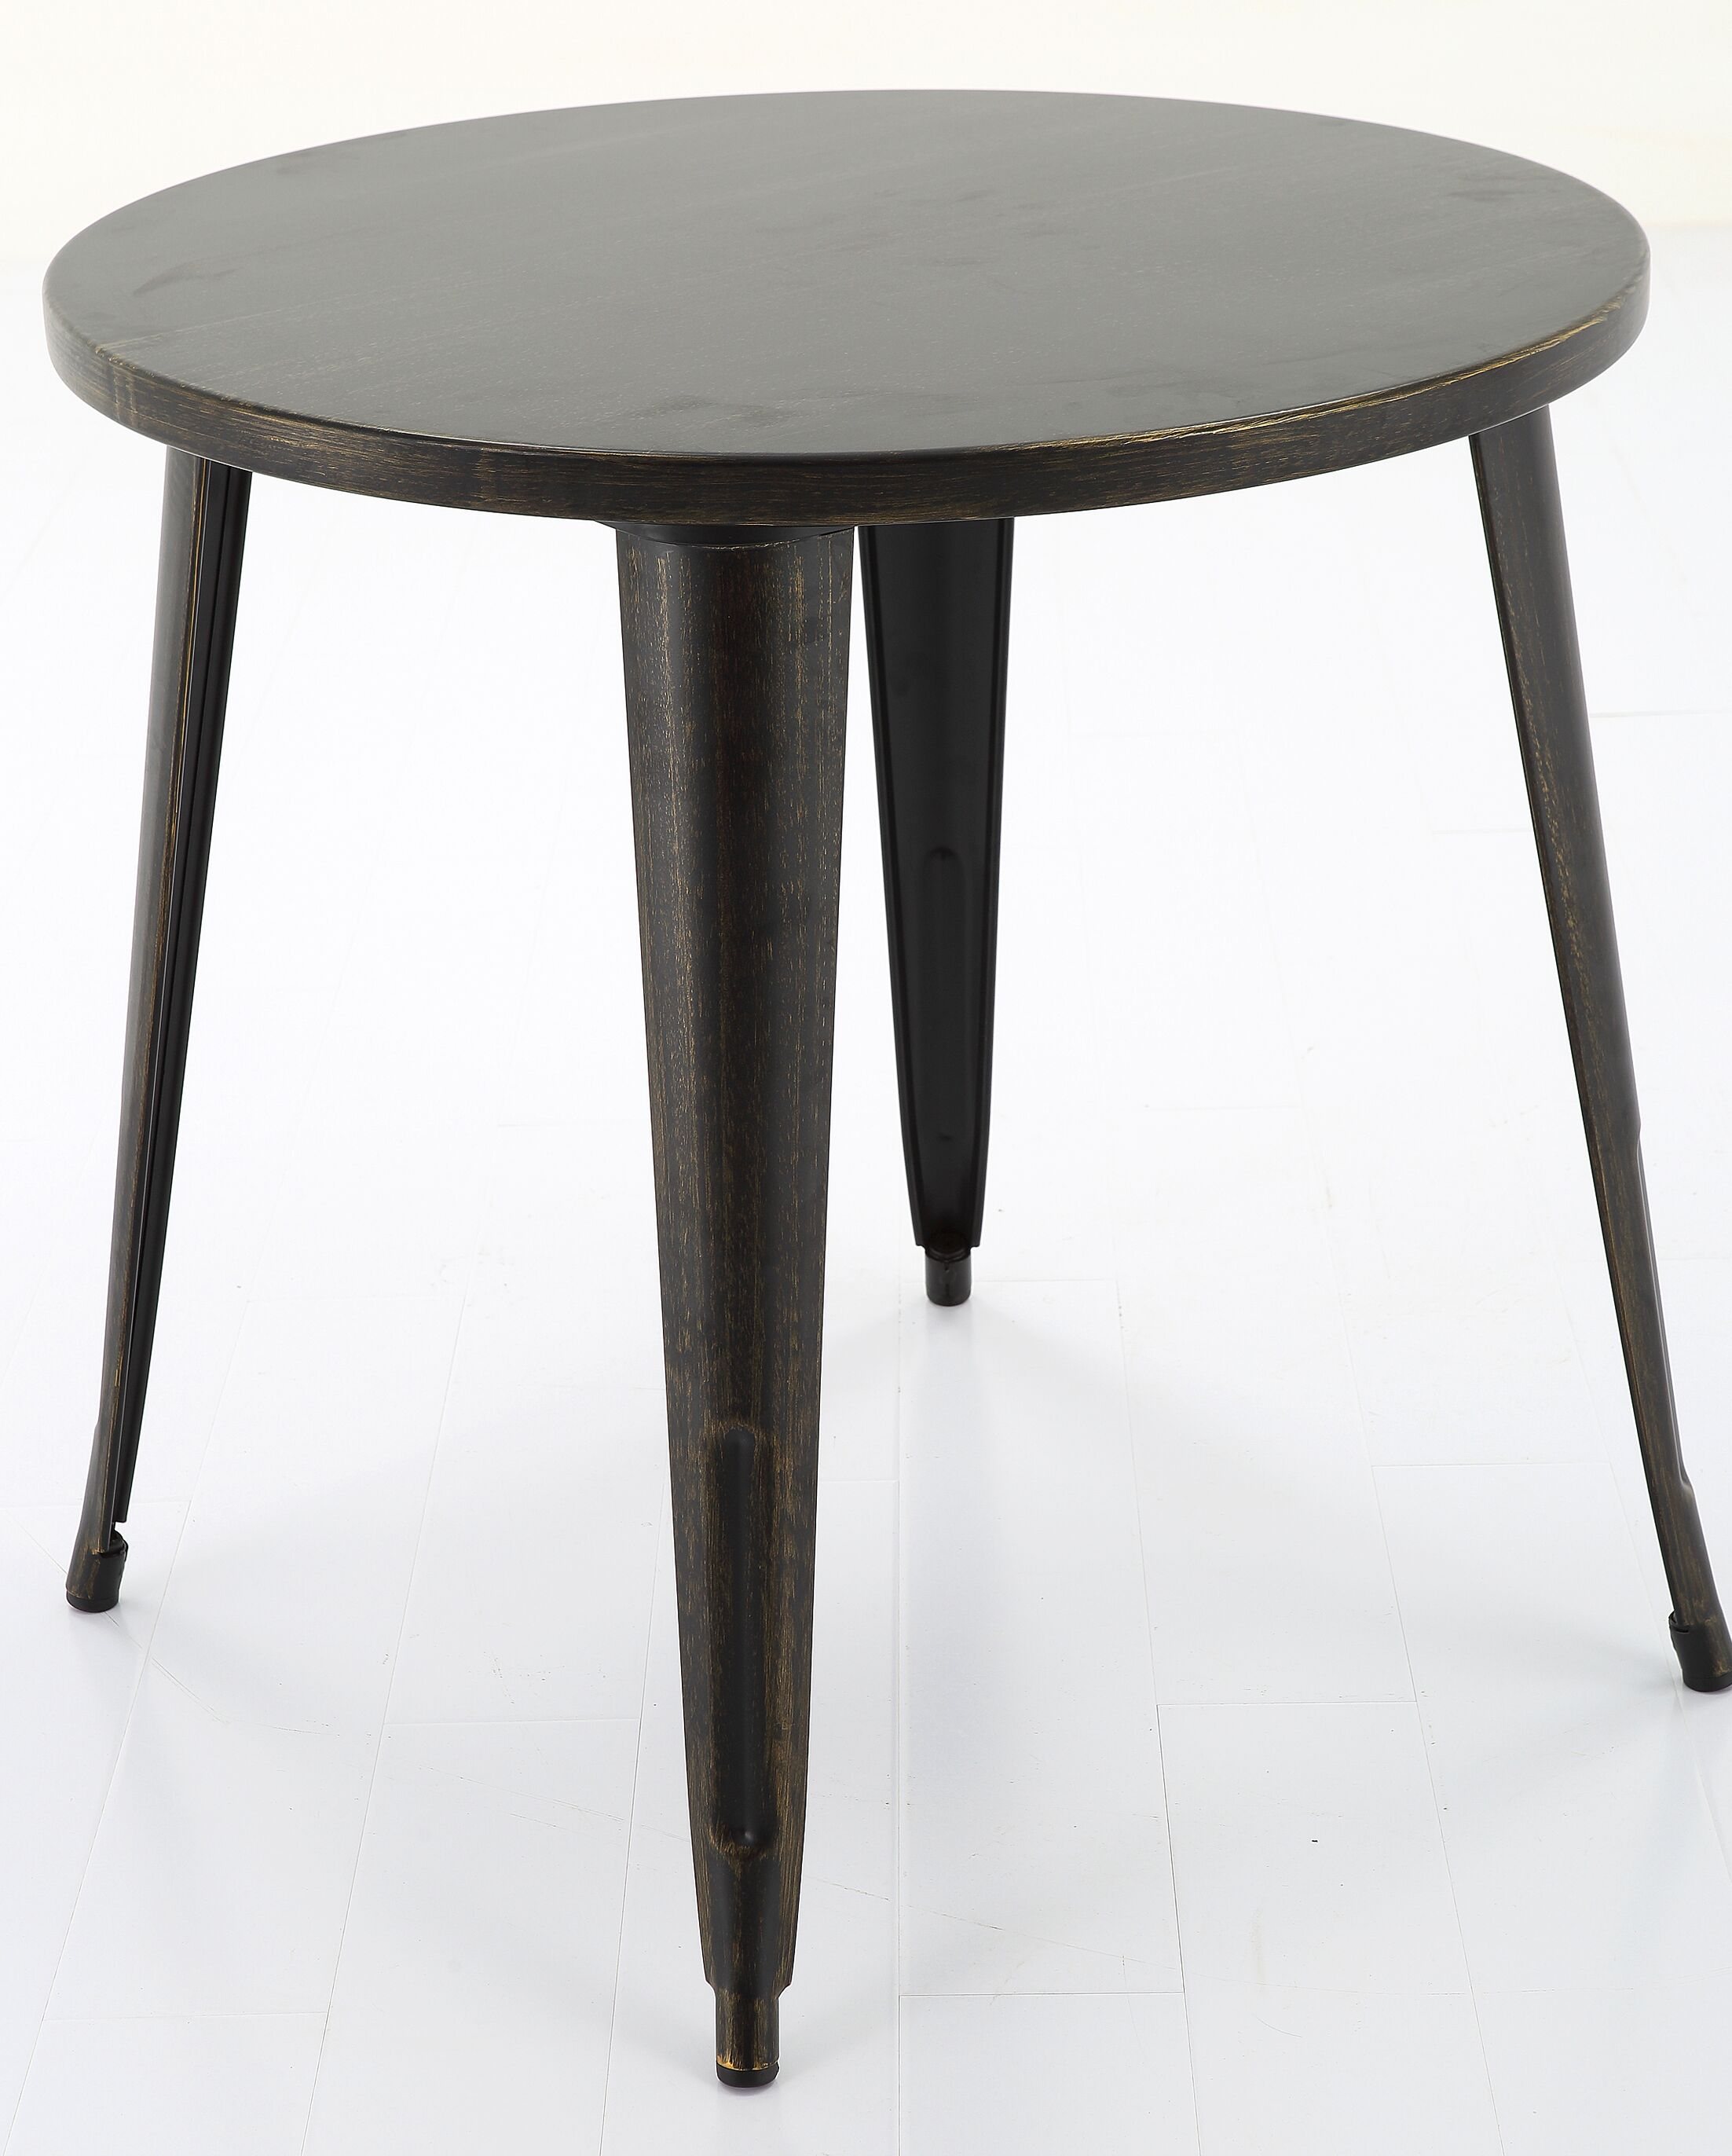 Leeann Bar Table Table Height: 40.7, Top Color: Black